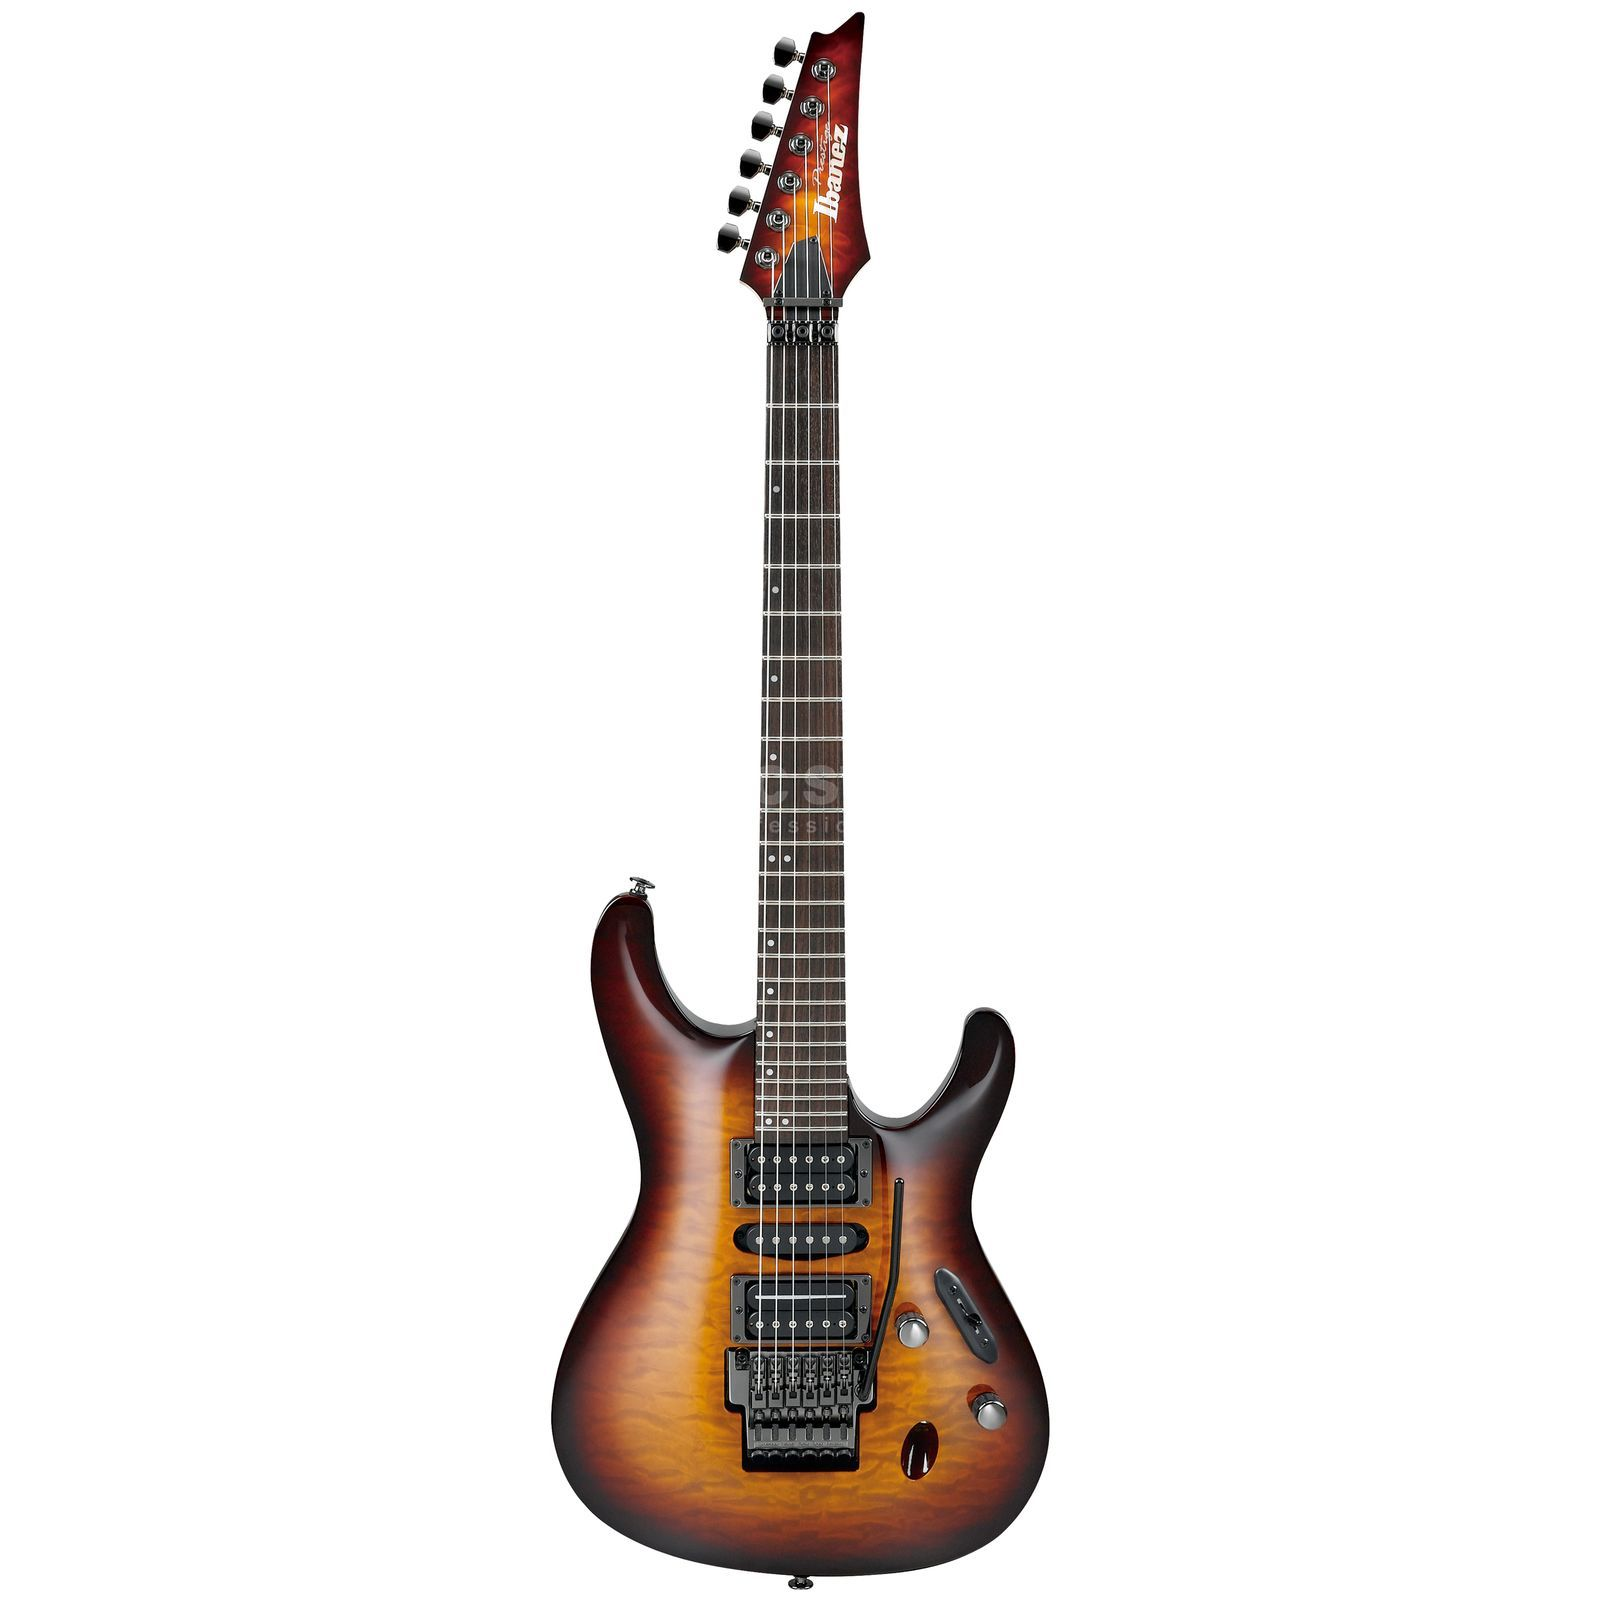 Ibanez Prestige S5570Q-RBB Regal Brown Burst Produktbild